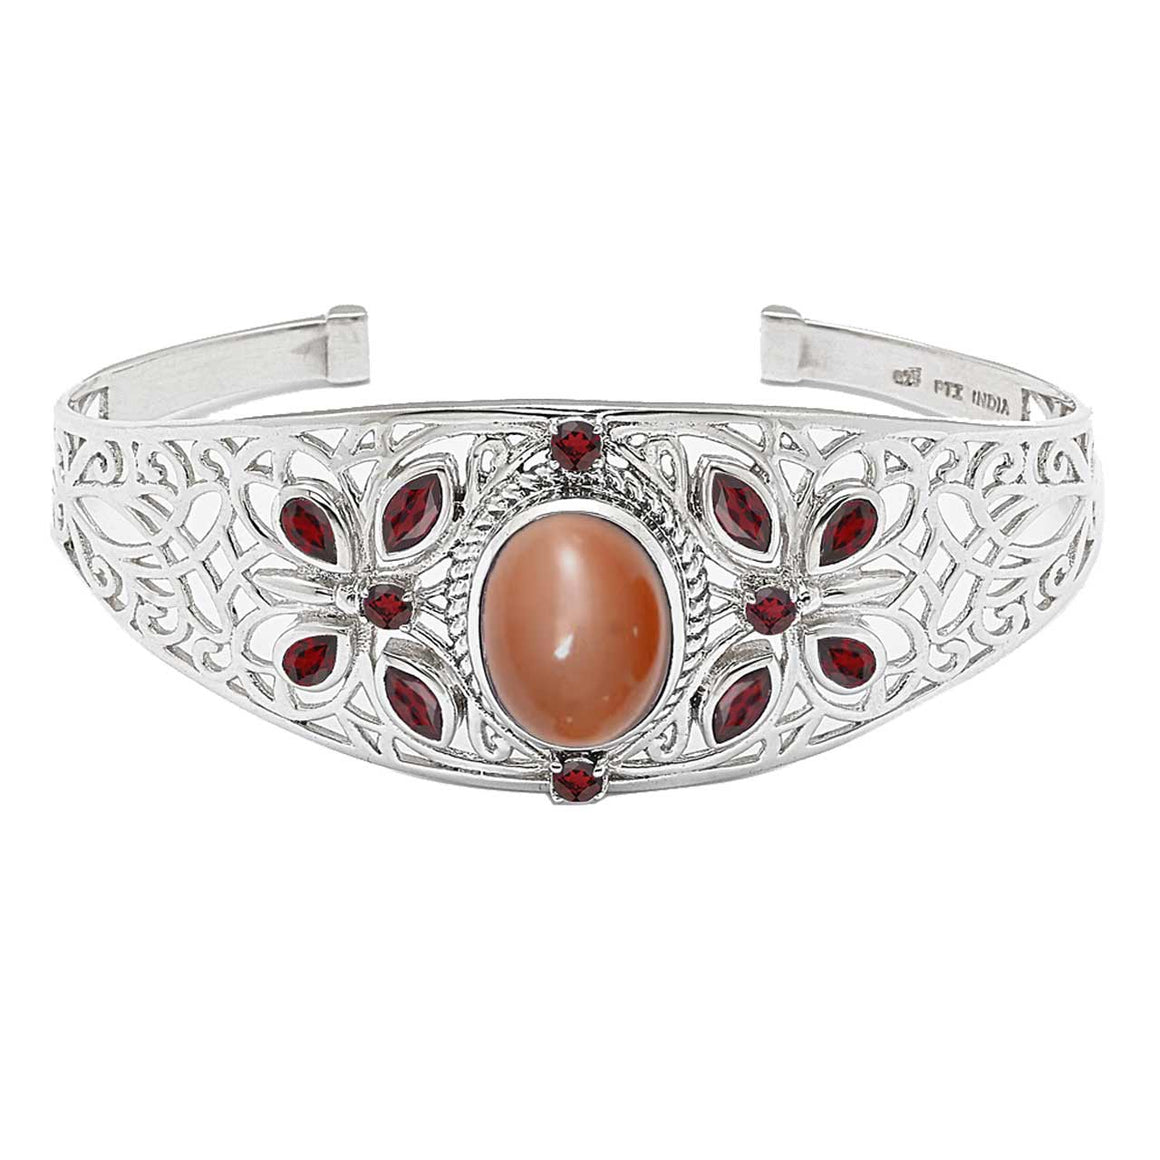 Peach Moonstone and Garnet Cuff Bracelet